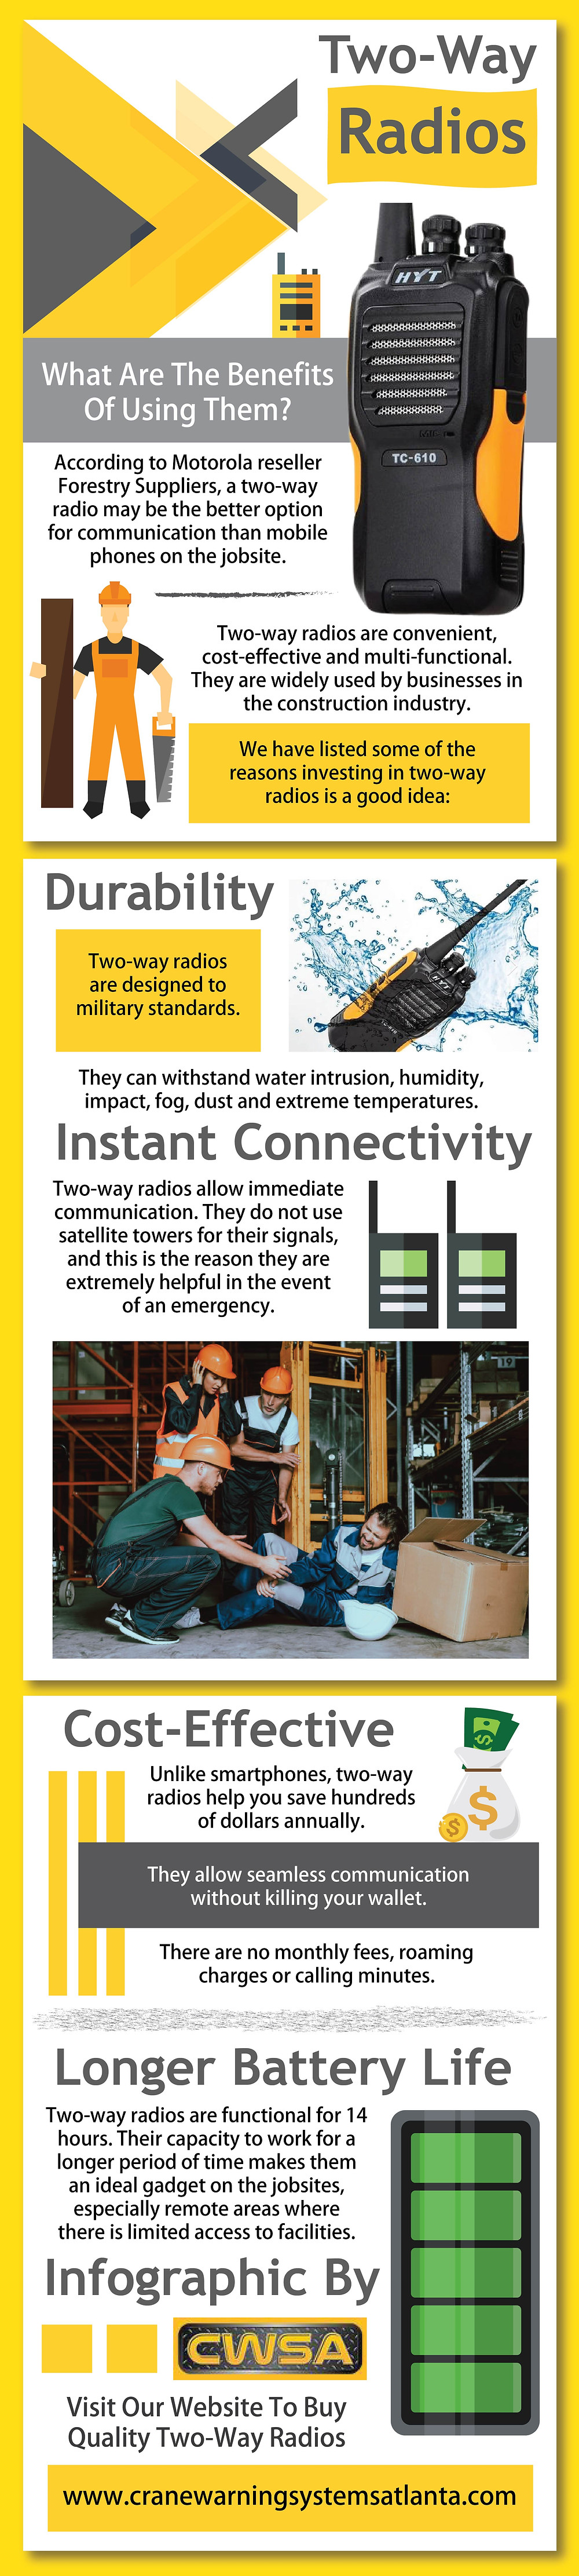 What are the benefits of using Two-Way Radios